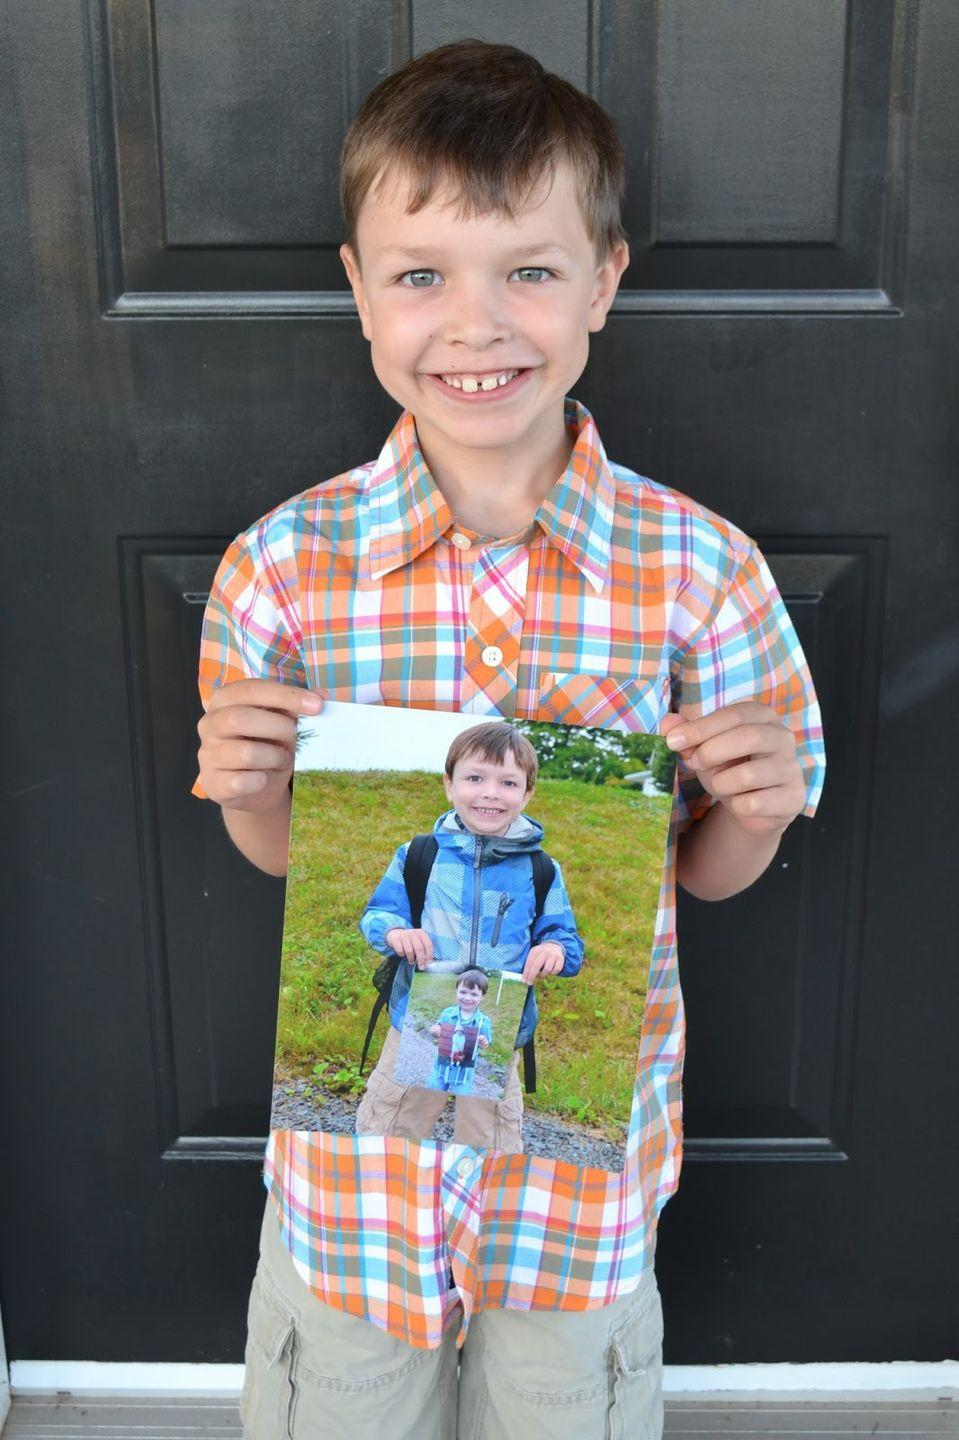 """<p>Start this mind-bending tradition when your kids first start school. Each year, they'll take a new photo holding the one they took the year before. </p><p><em><a href=""""http://eastcoastmommyblog.blogspot.com/2013/09/first-day-of-school.html"""" rel=""""nofollow noopener"""" target=""""_blank"""" data-ylk=""""slk:See more at East Coast Mommy »"""" class=""""link rapid-noclick-resp"""">See more at East Coast Mommy »</a></em></p>"""